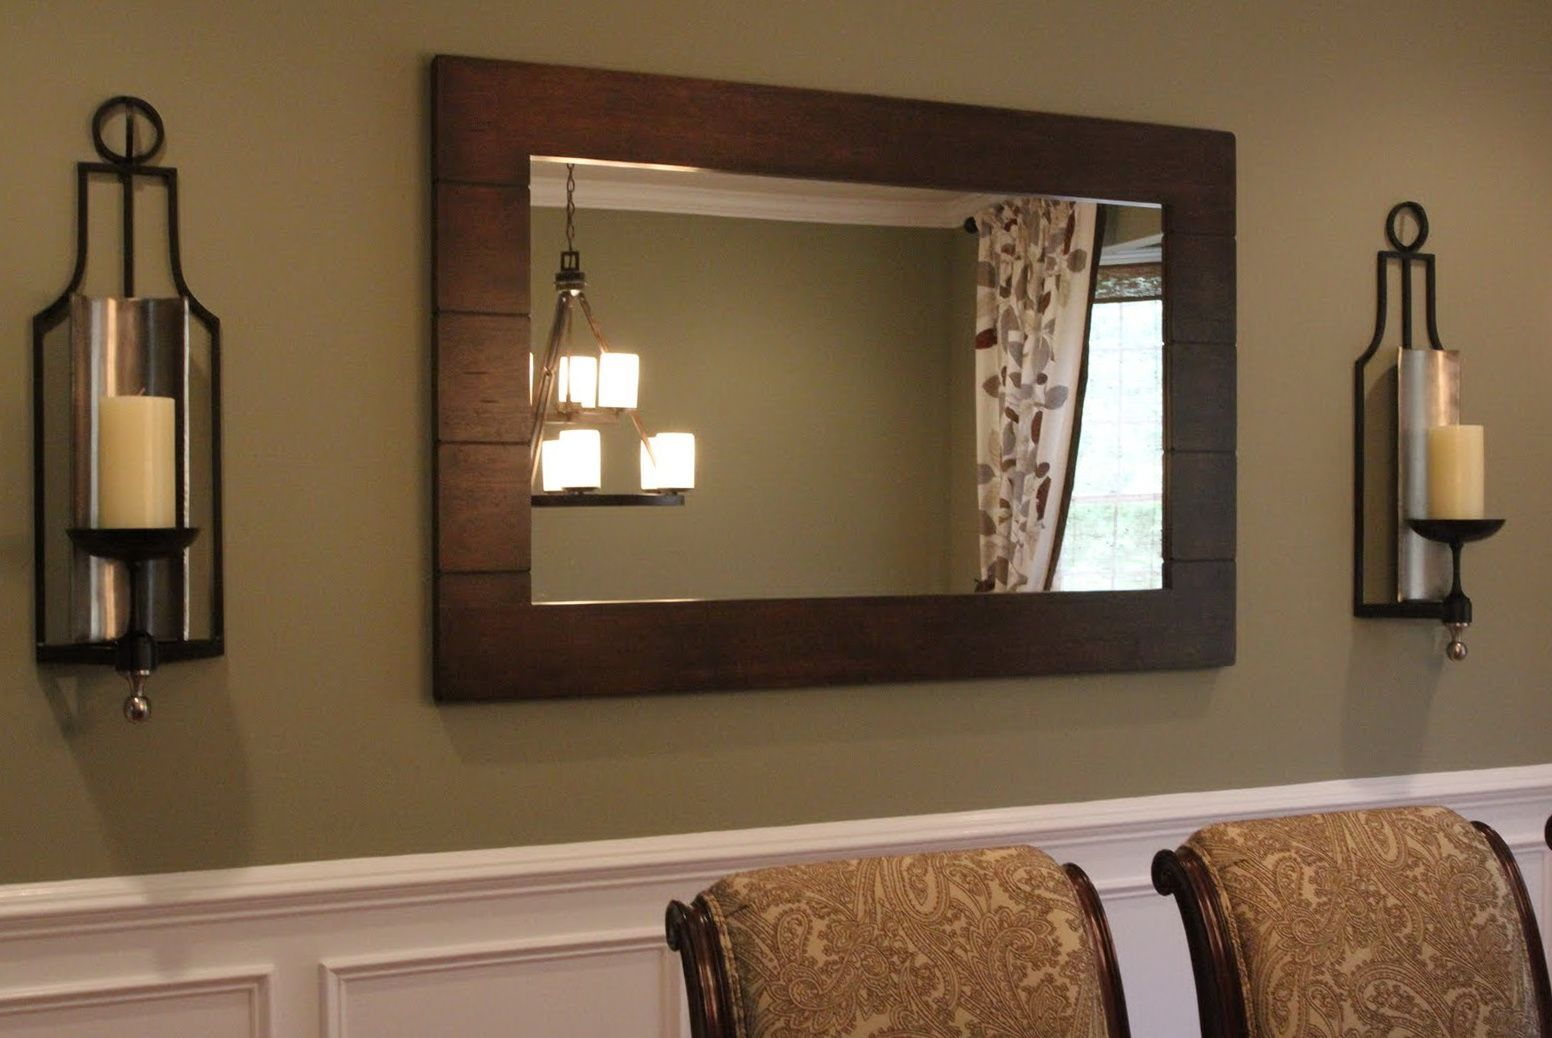 Extra Tall Wall Sconces | Dining room mirror wall, Dining ... on Dining Room Sconce Idea id=65068